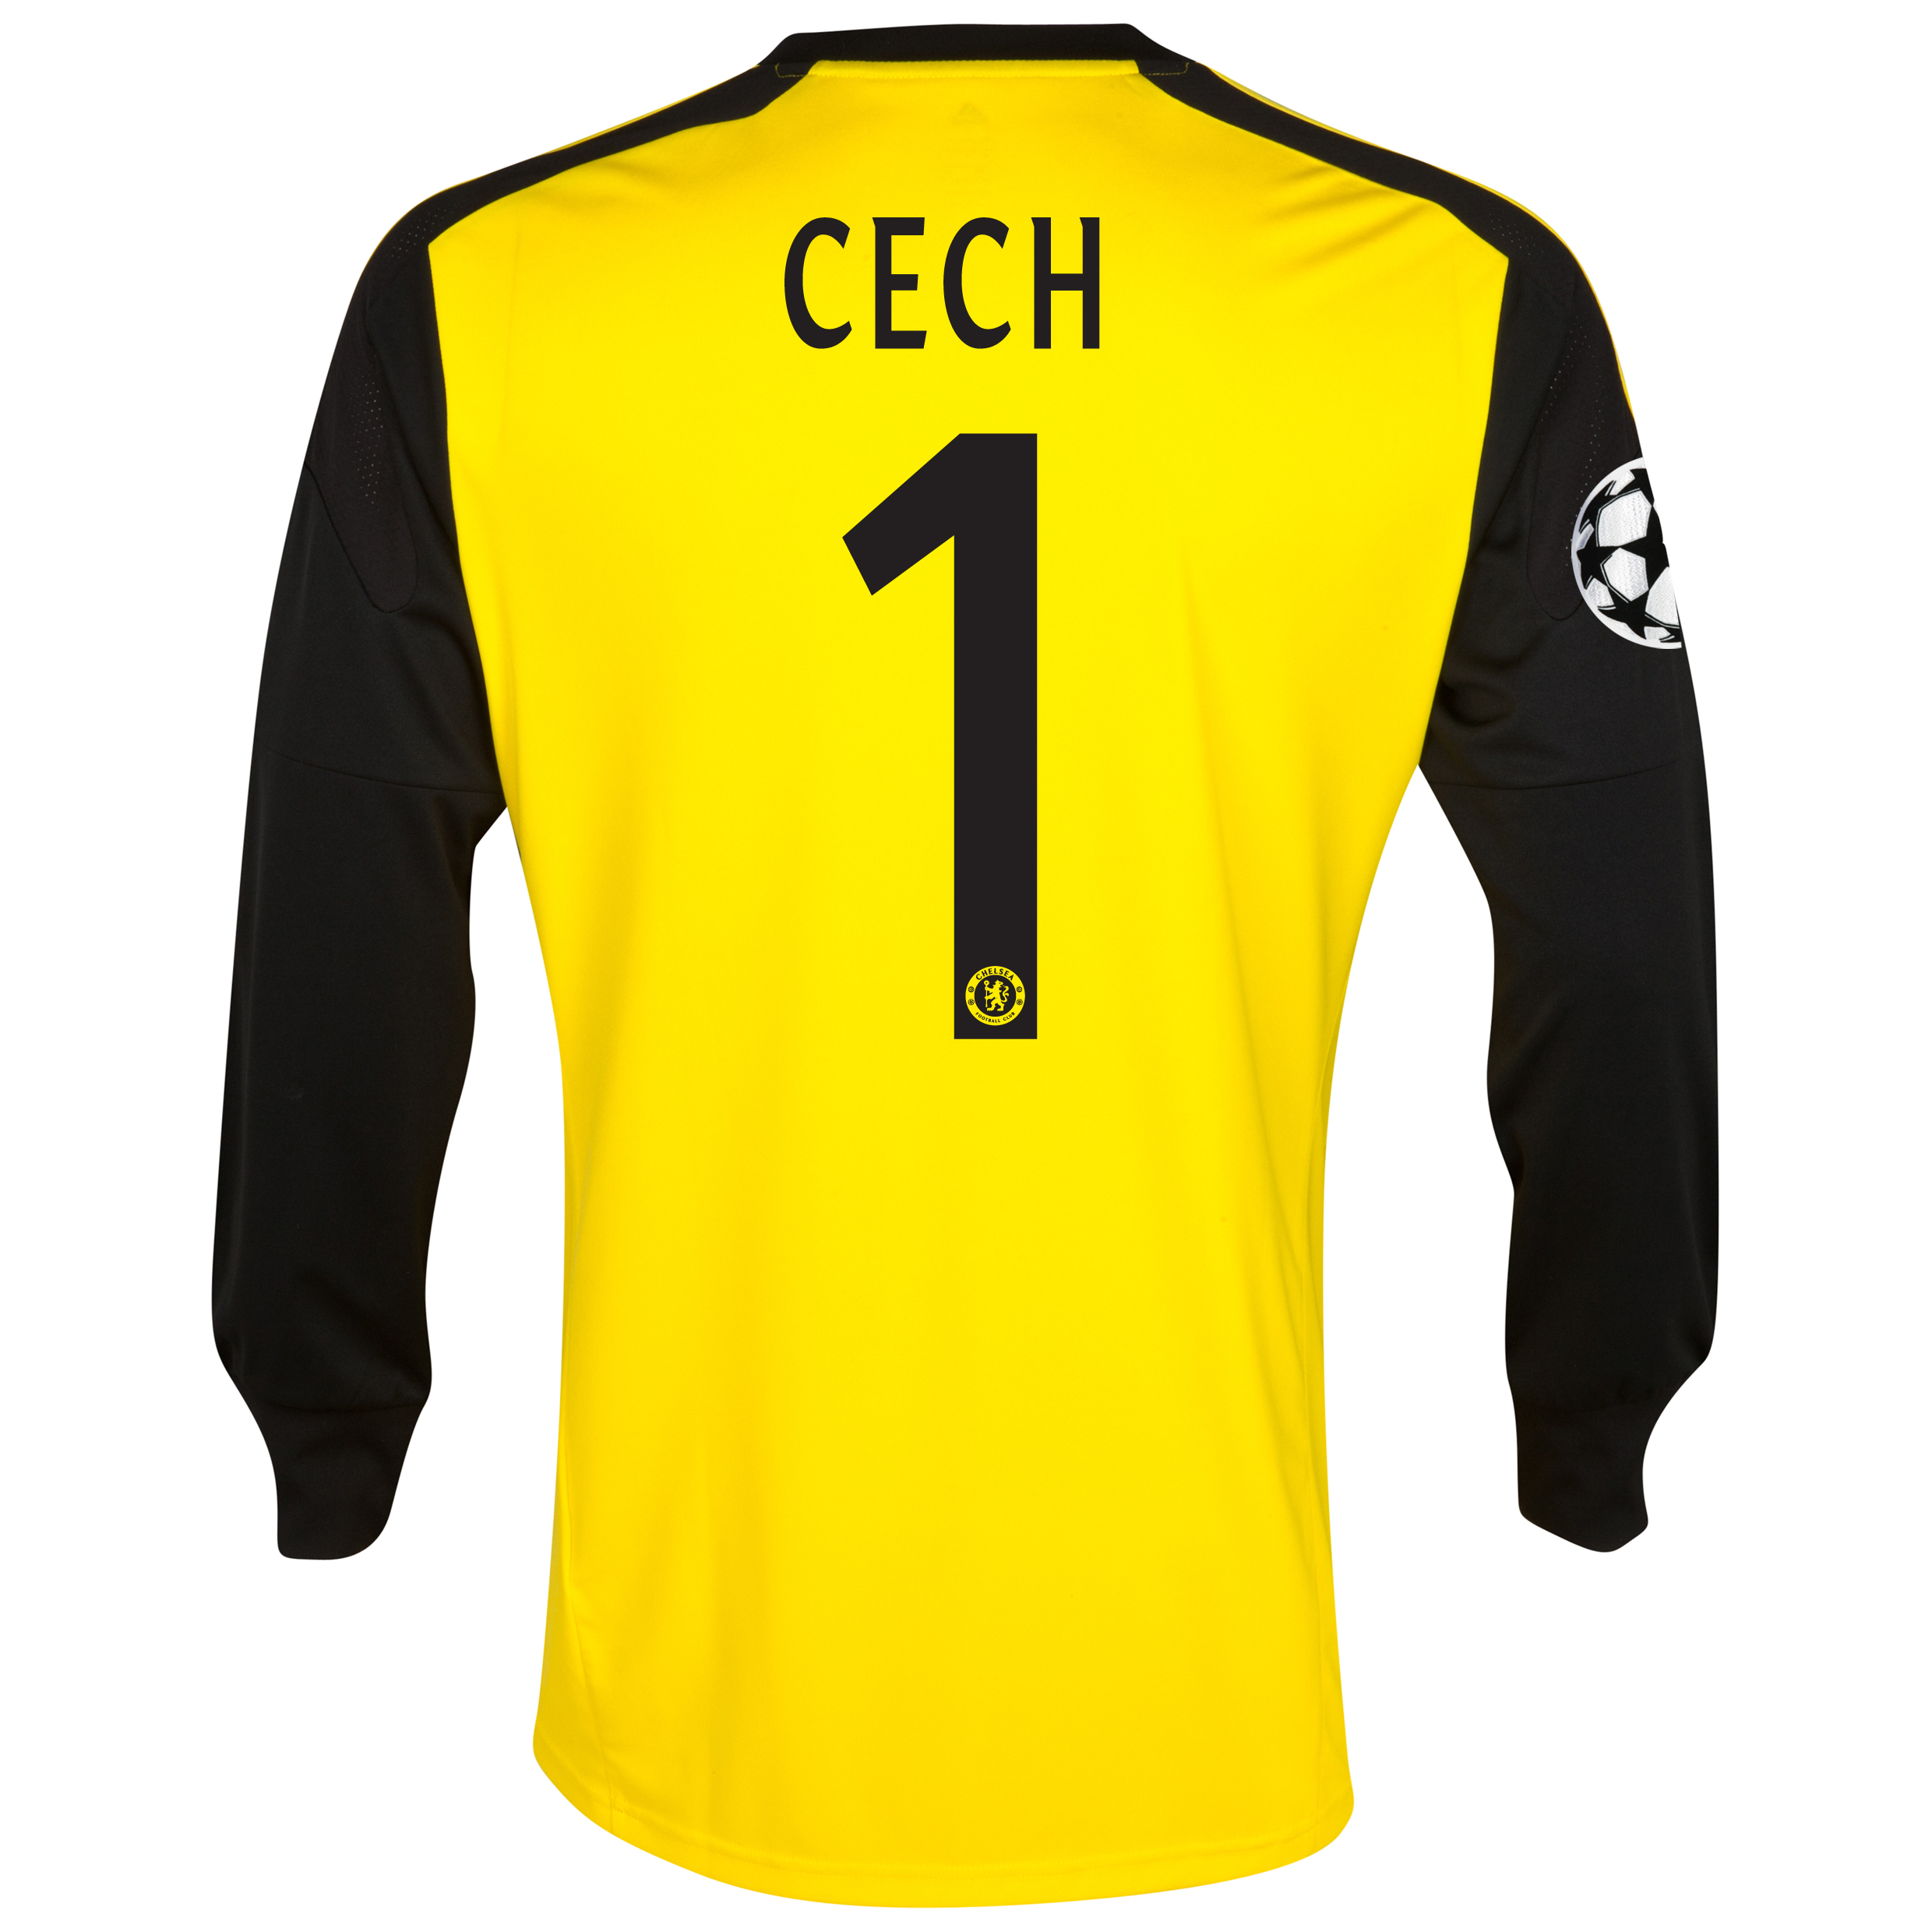 Chelsea UEFA Champions League Home Goalkeeper Shirt 2013/14 with Cech 1 printing